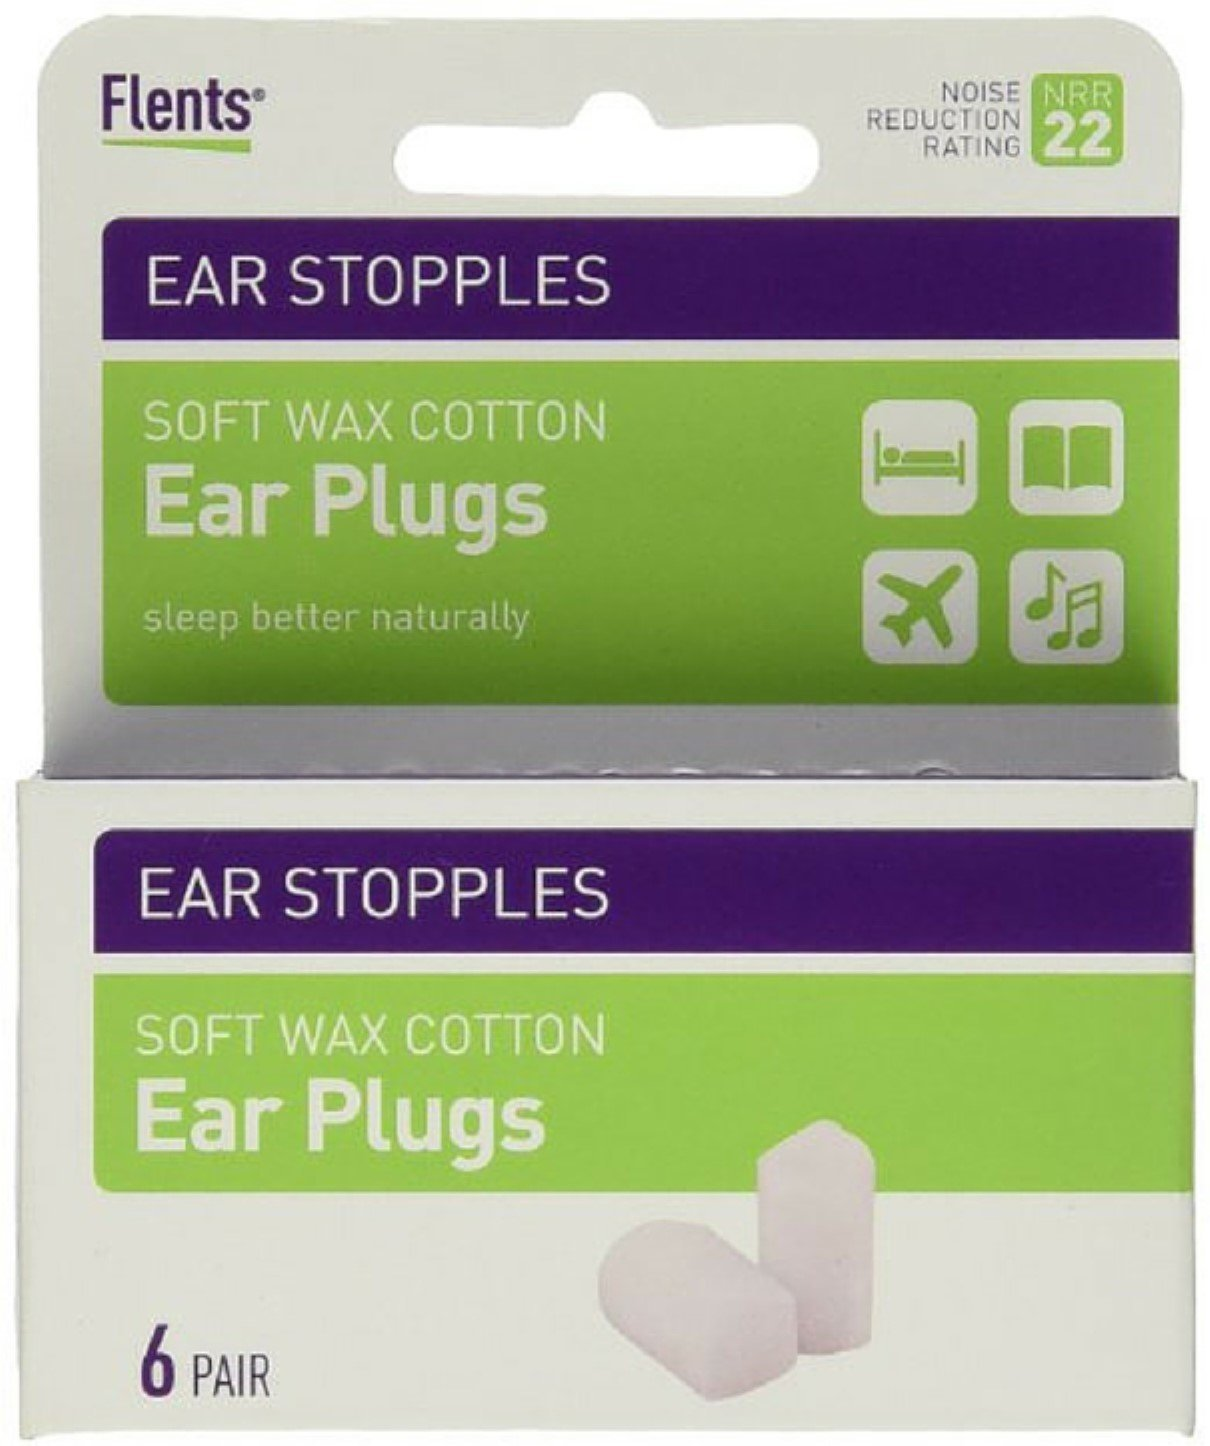 Flents Ear Stopples Wax-Cotton Ear Plugs 6 Pairs (Pack of 10)